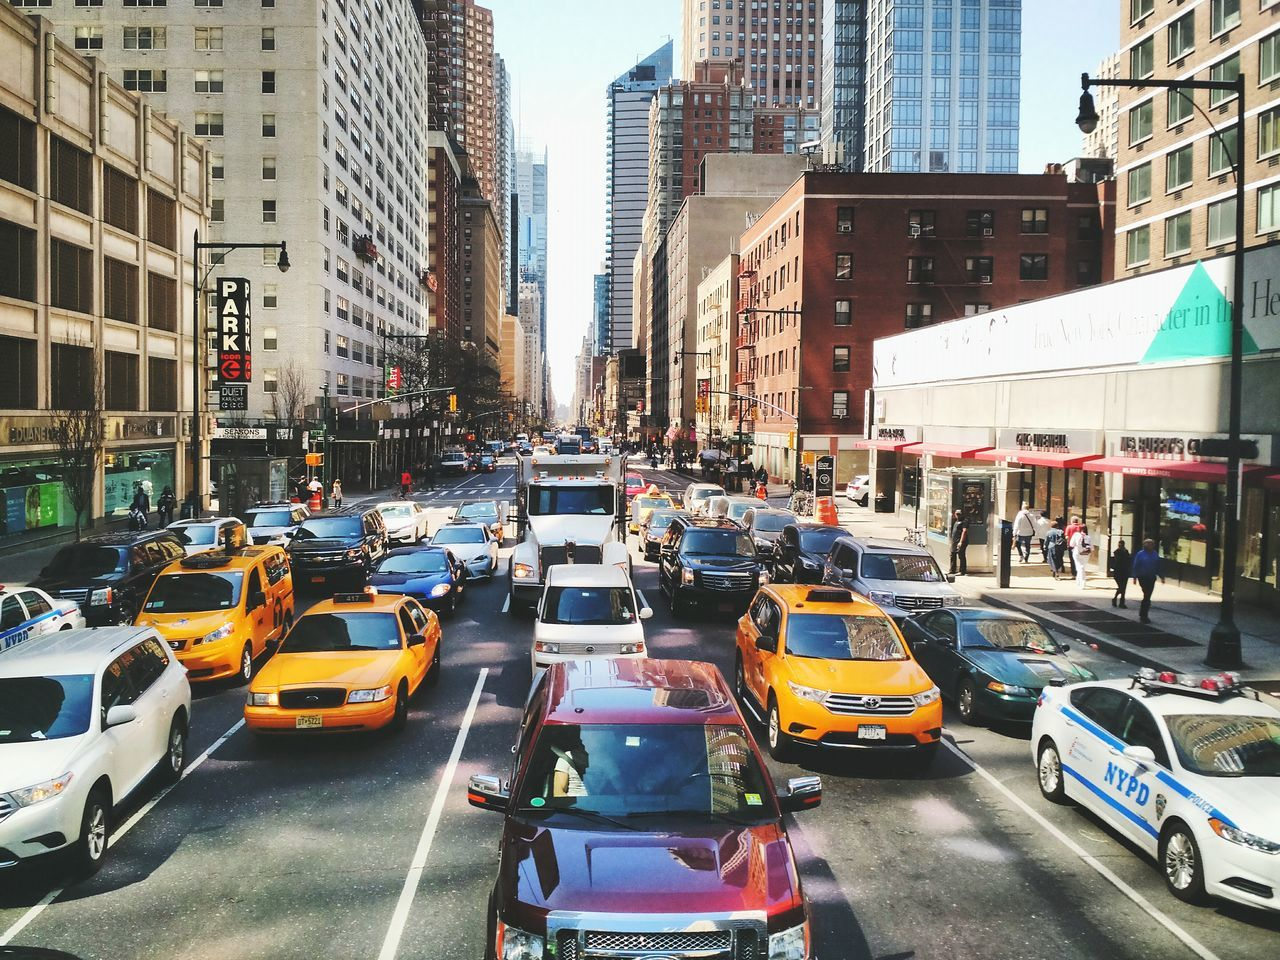 architecture, car, city, transportation, building exterior, city life, land vehicle, built structure, road, street, traffic, skyscraper, yellow taxi, large group of people, city street, mode of transport, taxi, outdoors, day, travel destinations, modern, cityscape, people